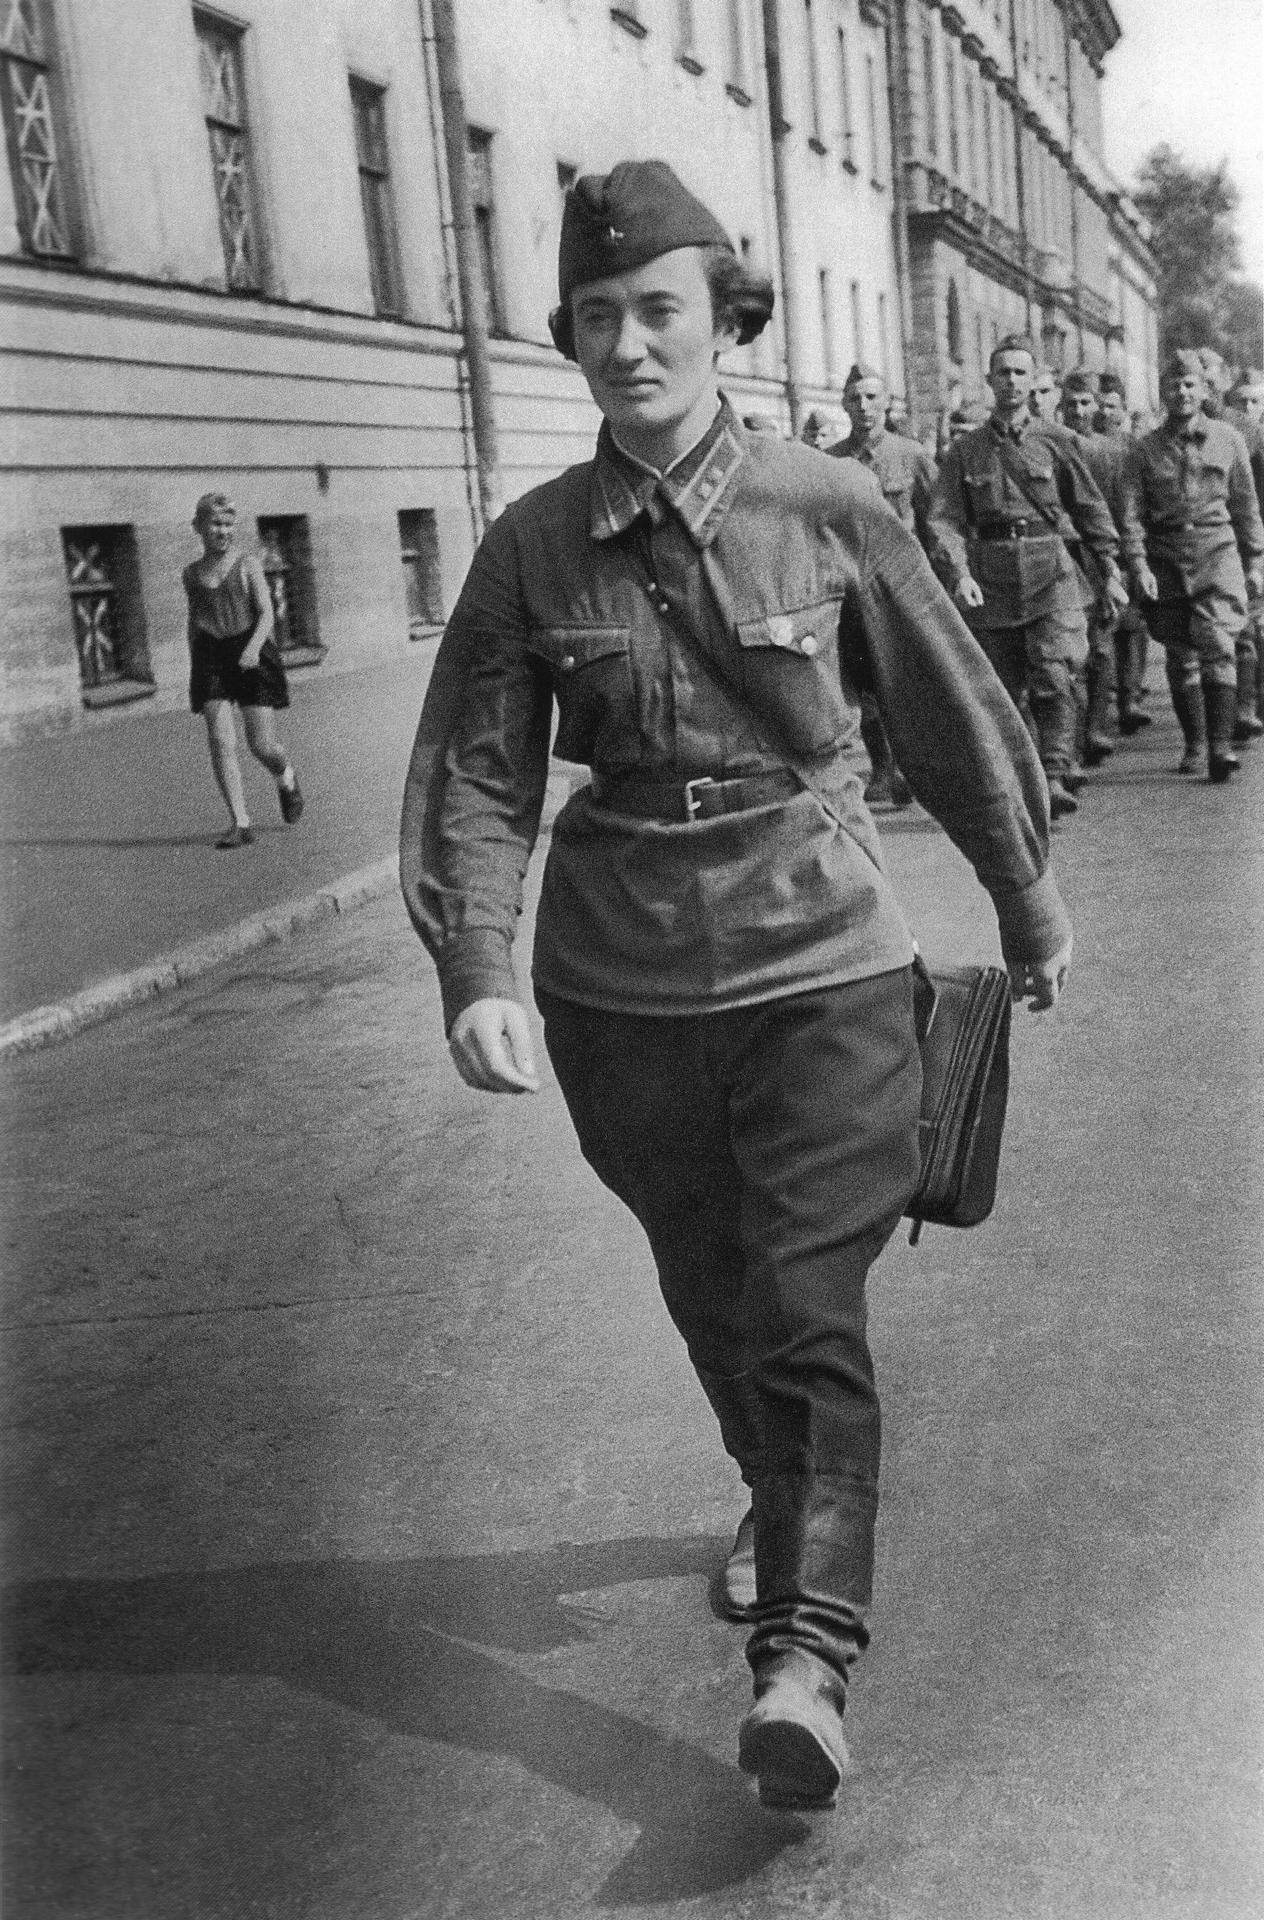 ppsh-41:  Platoon commander with her unit on the streets of Leningrad.